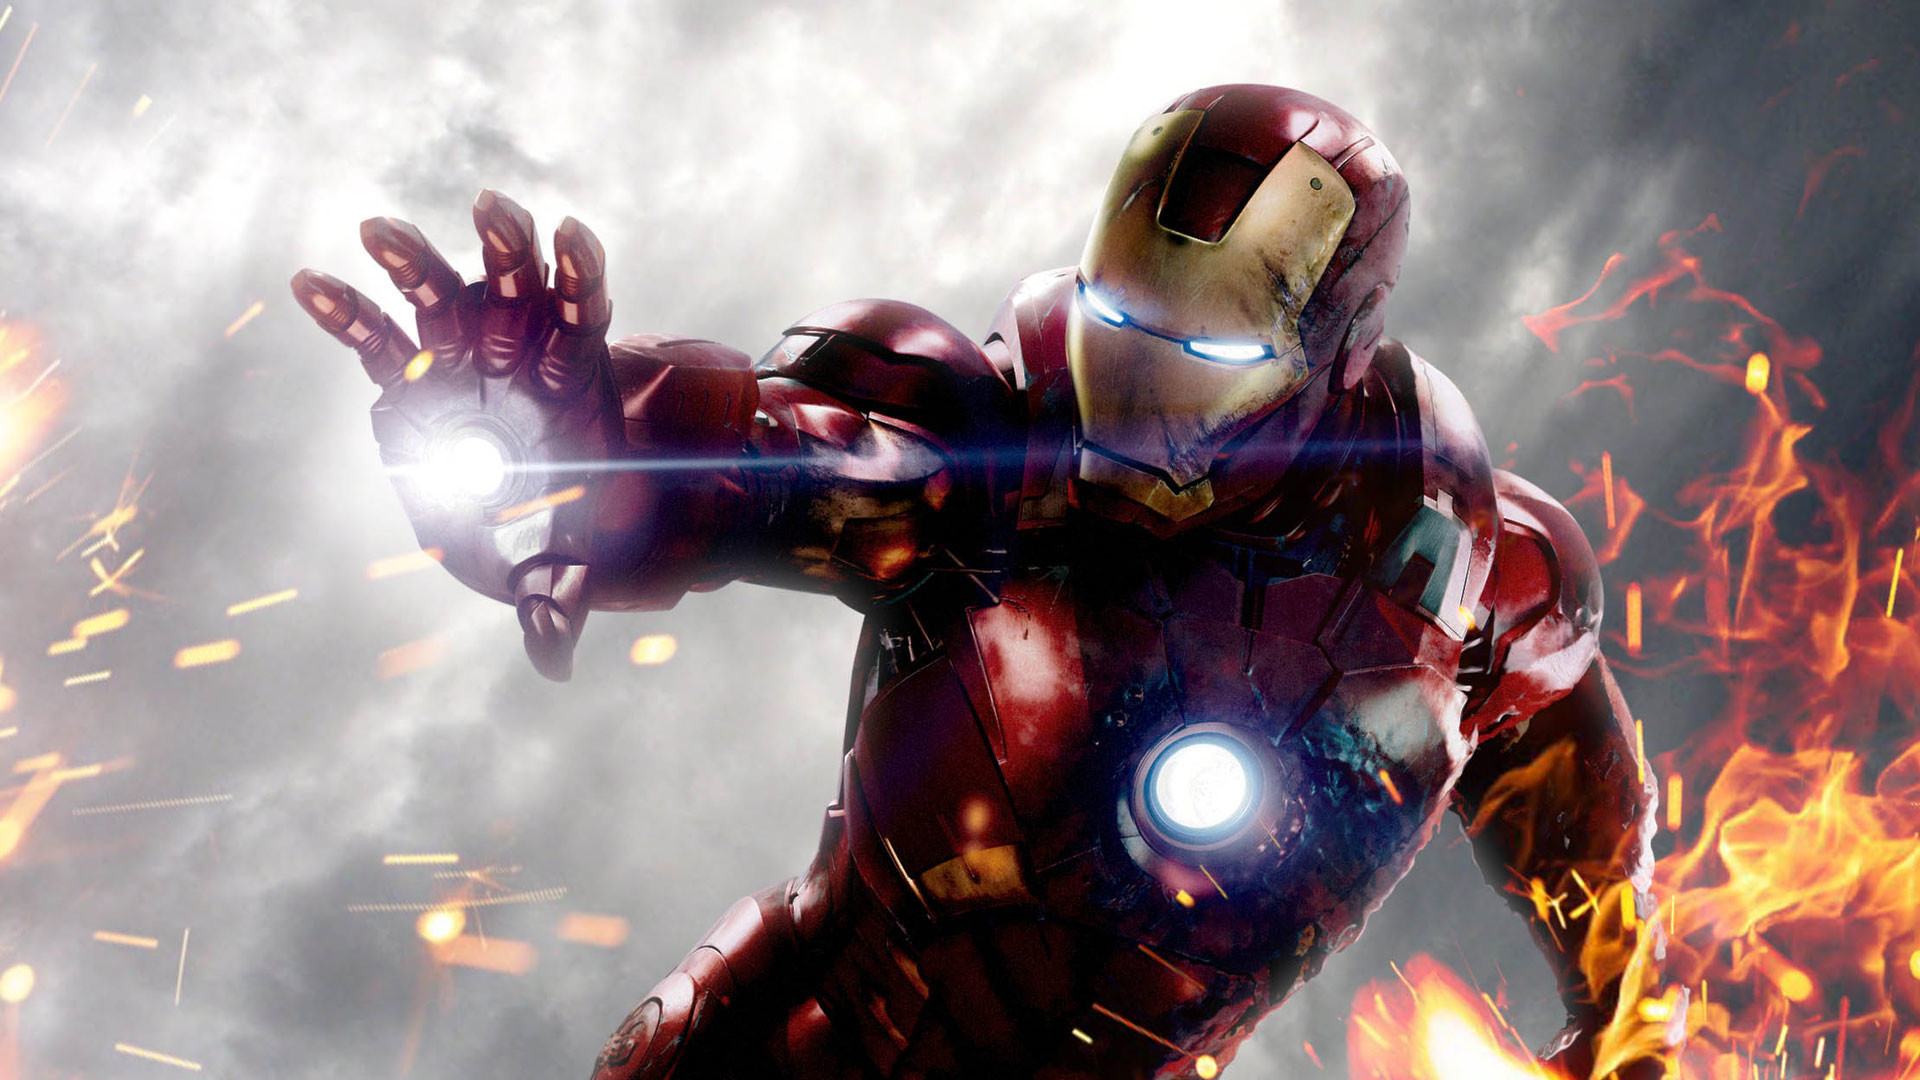 0 Arc Reactor Wallpaper HD Collection of Iron Man Wallpaper Hd on Spyder  Wallpapers